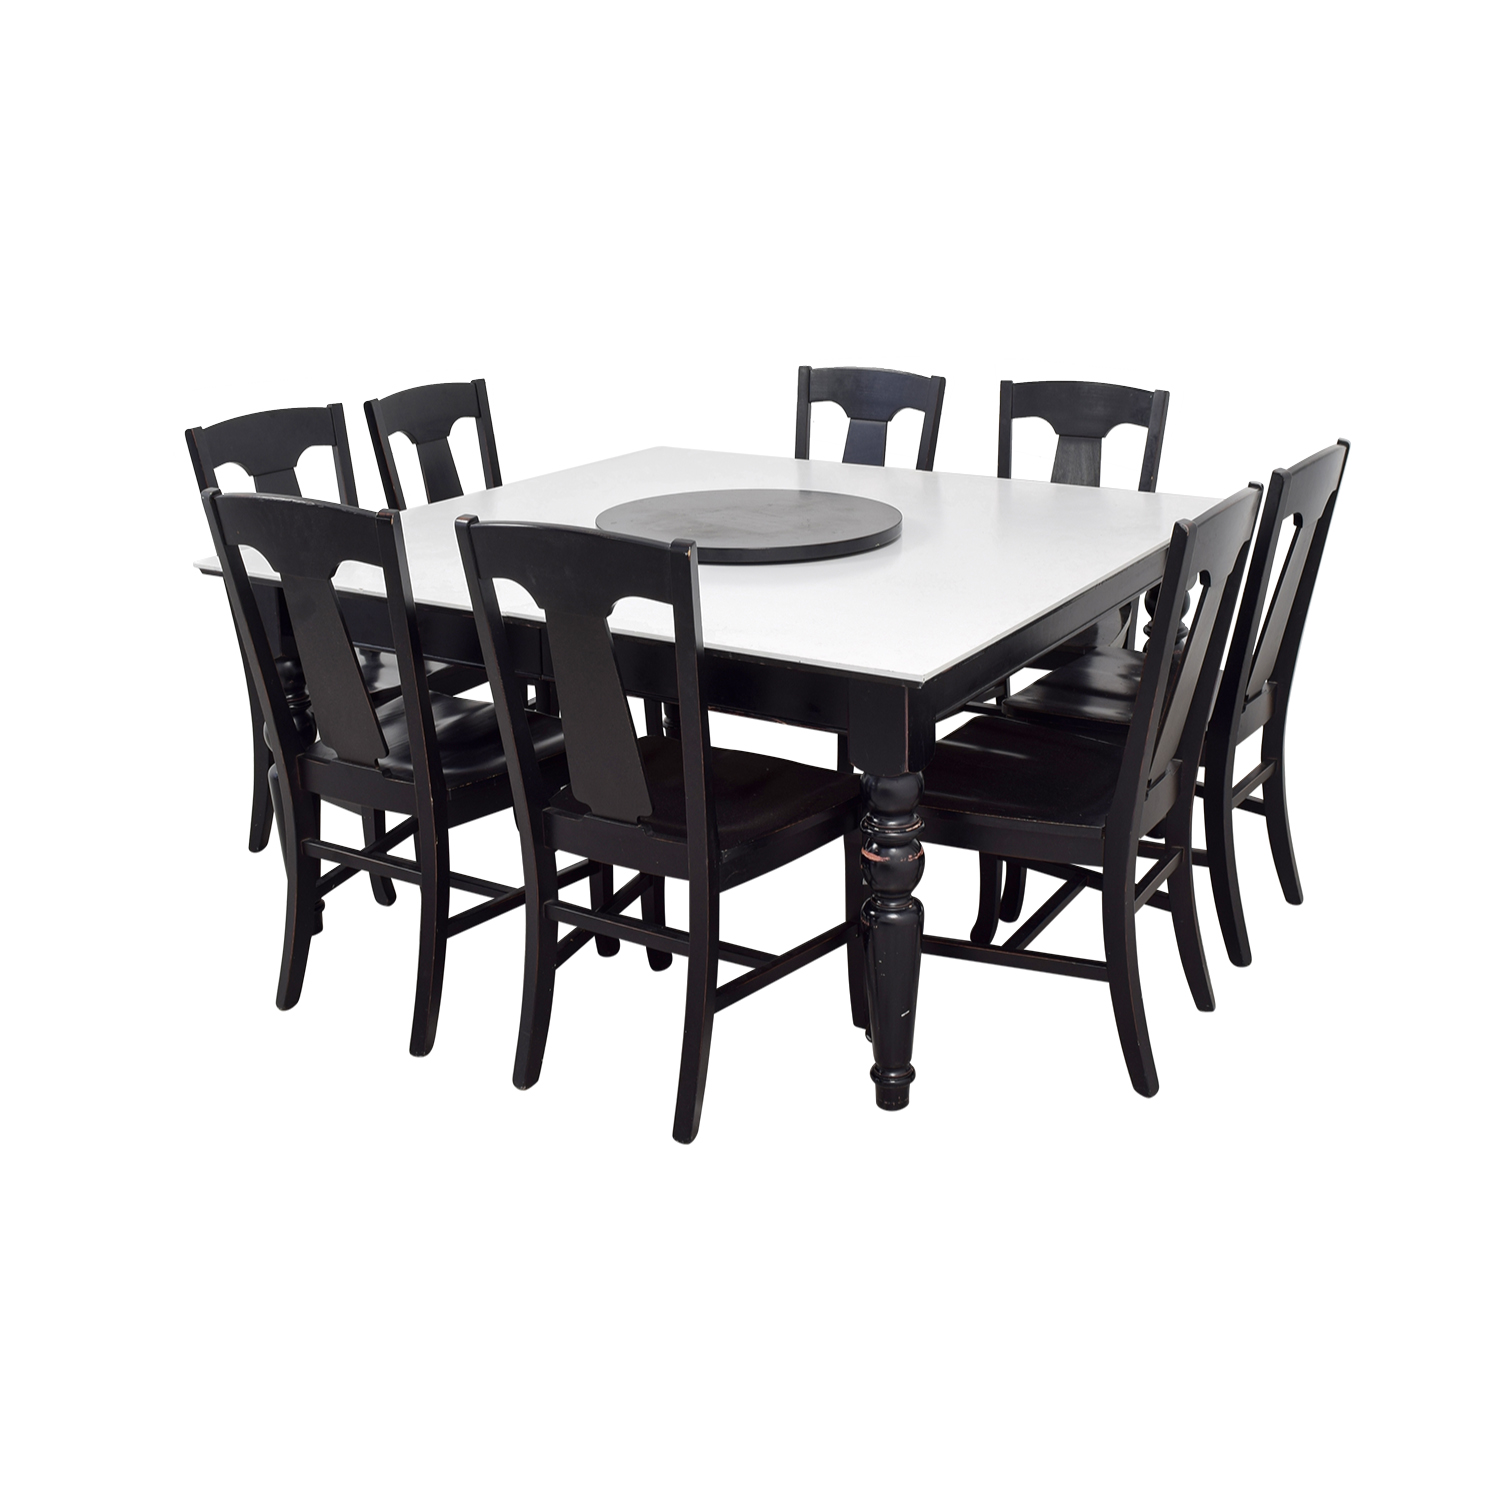 Pottery Barn White and Black Extendable Dining Set with Lazy Susan / Dinner Tables